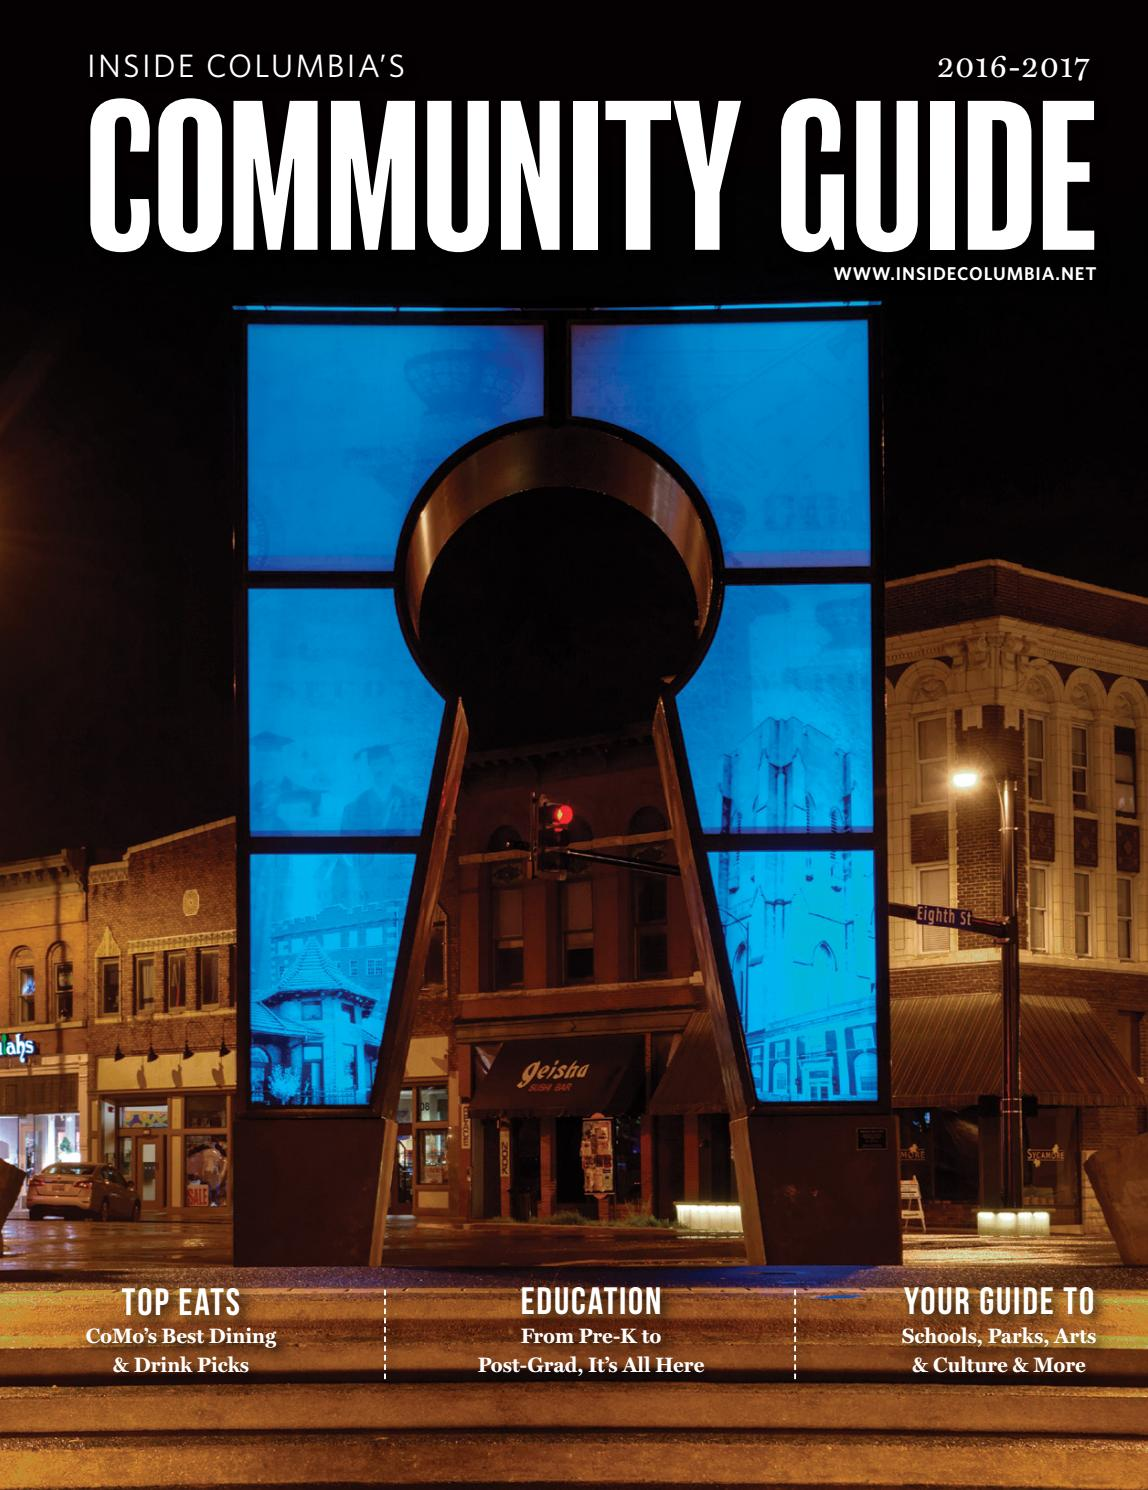 2016 Community Guide By Inside Columbia Magazine Issuu How To Tie A Double Windsor Knot Diagram Car Interior Design